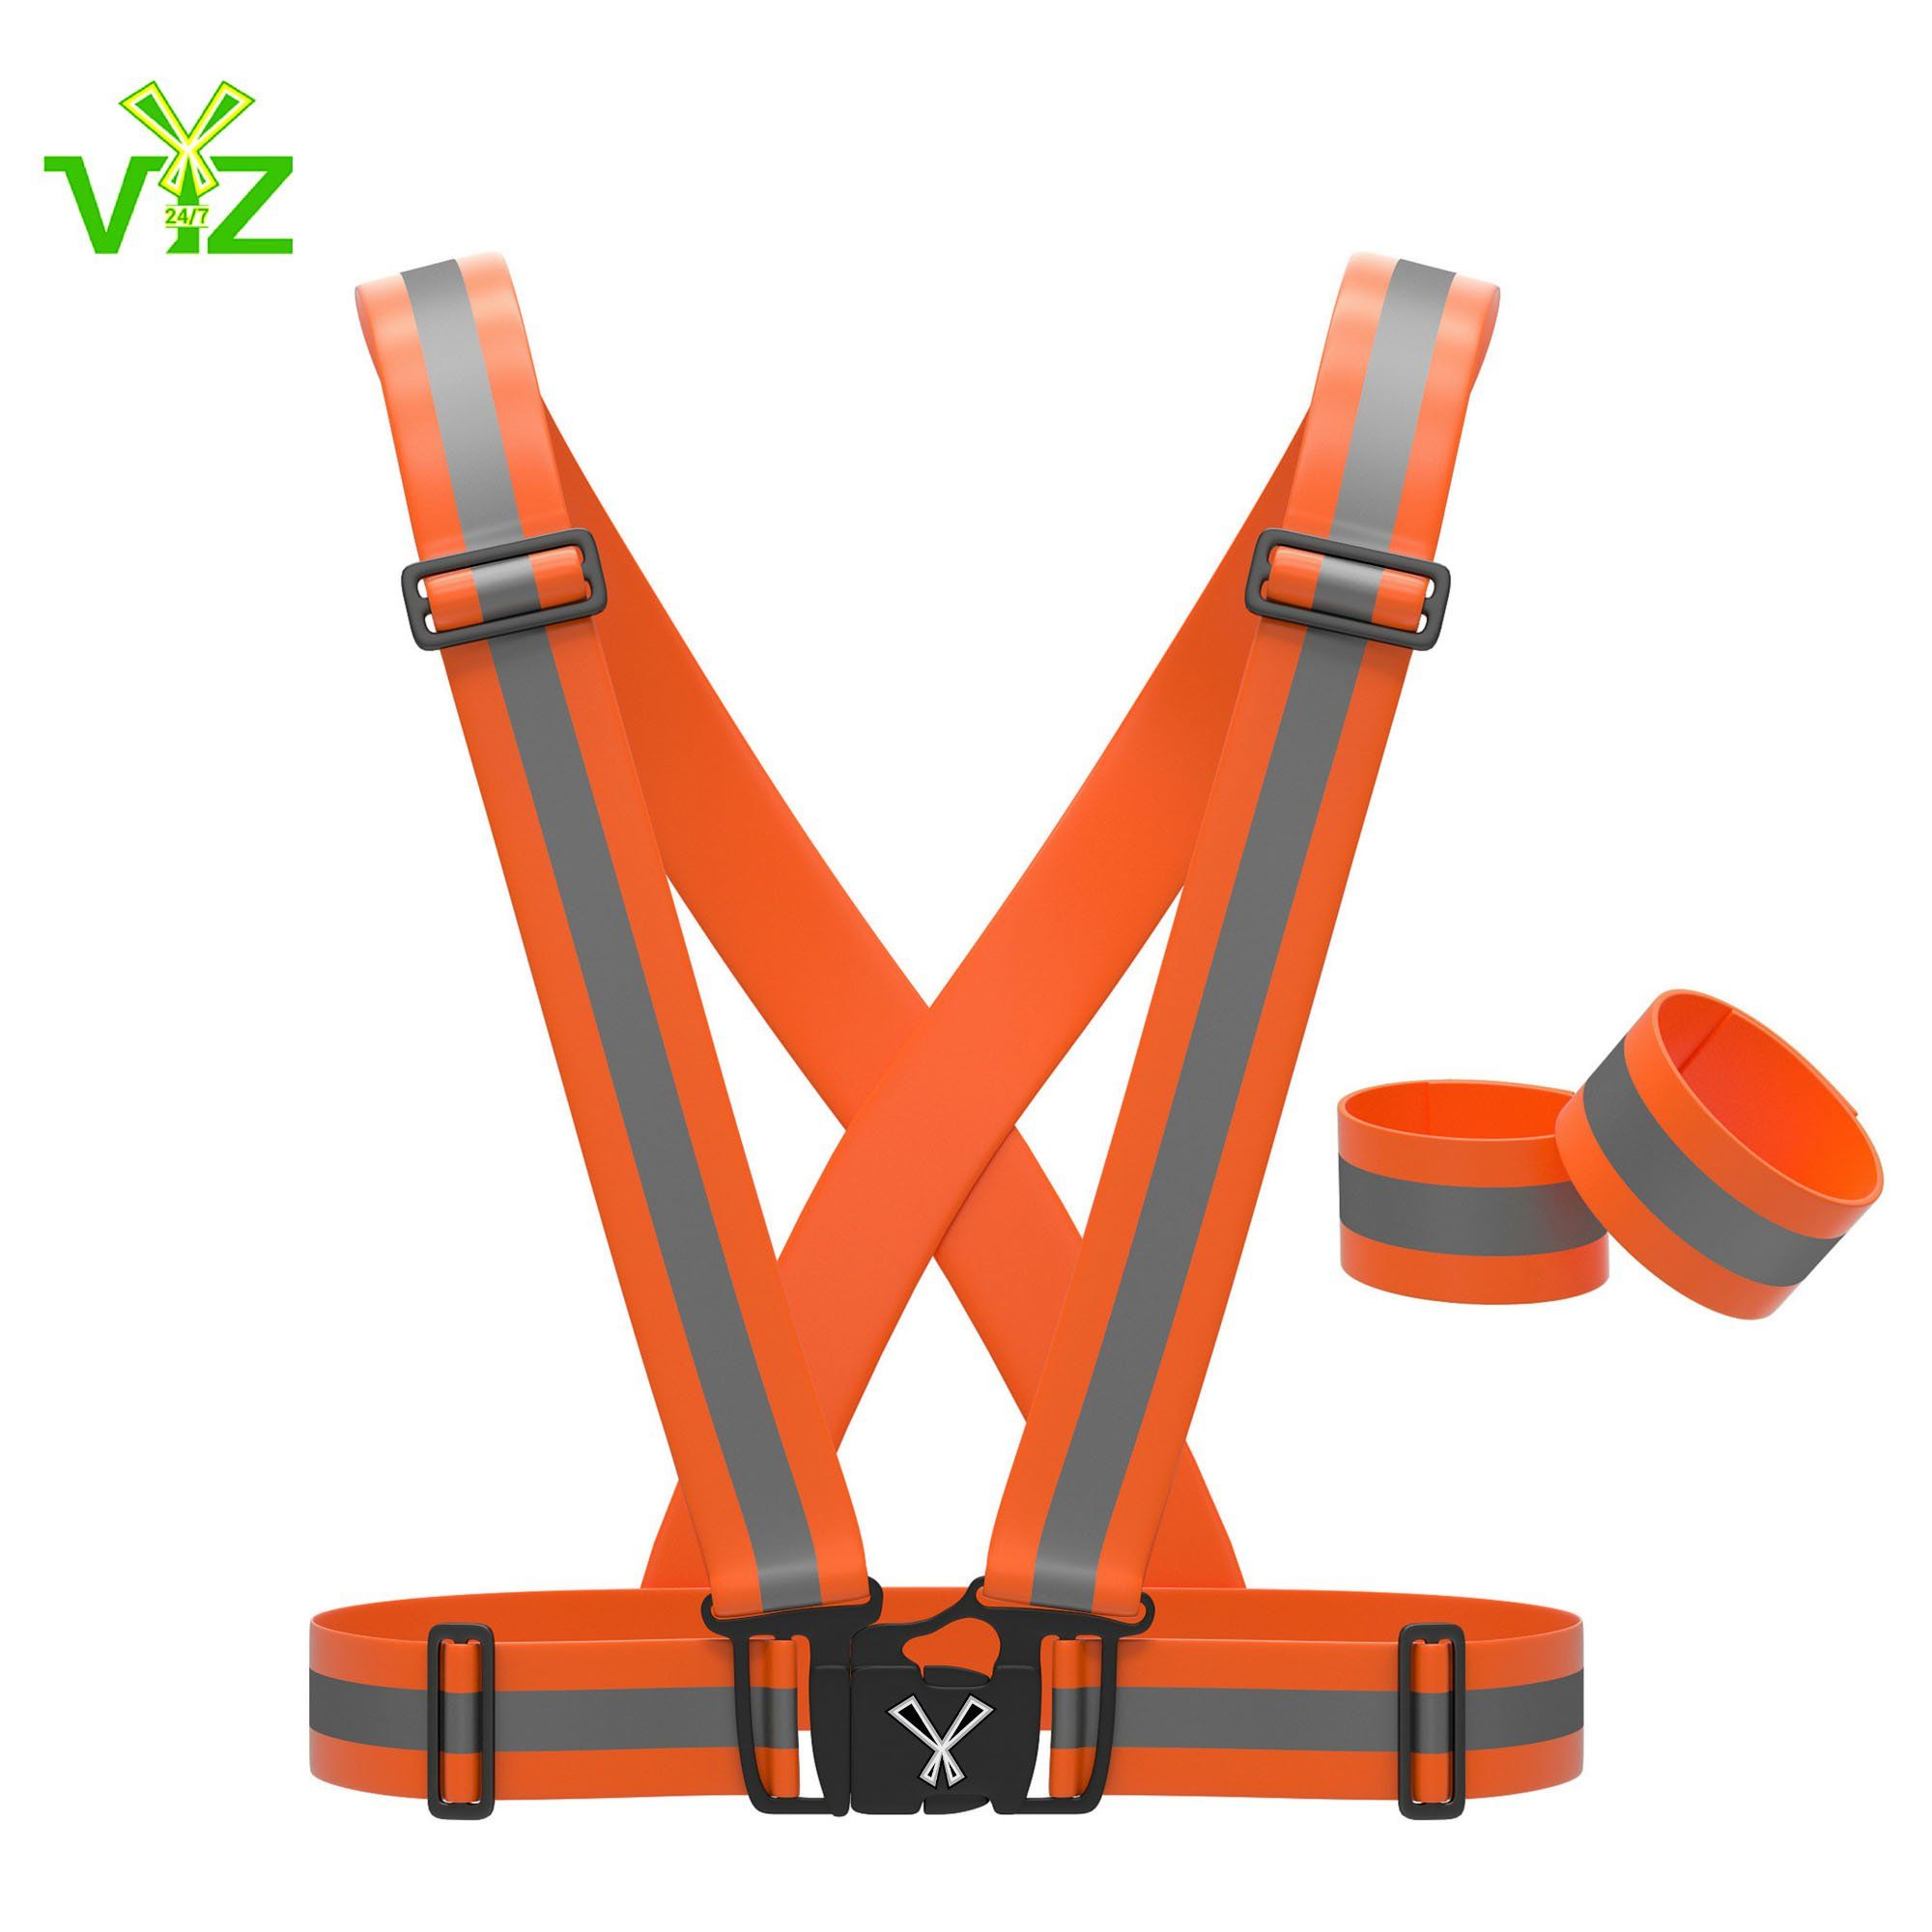 247 Viz Reflective Vest with Hi Vis Bands, Fully Adjustable & Multi-Purpose: Running, Cycling Gear, Motorcycle Safety, Dog Walking & More - High Visibility Neon Orange